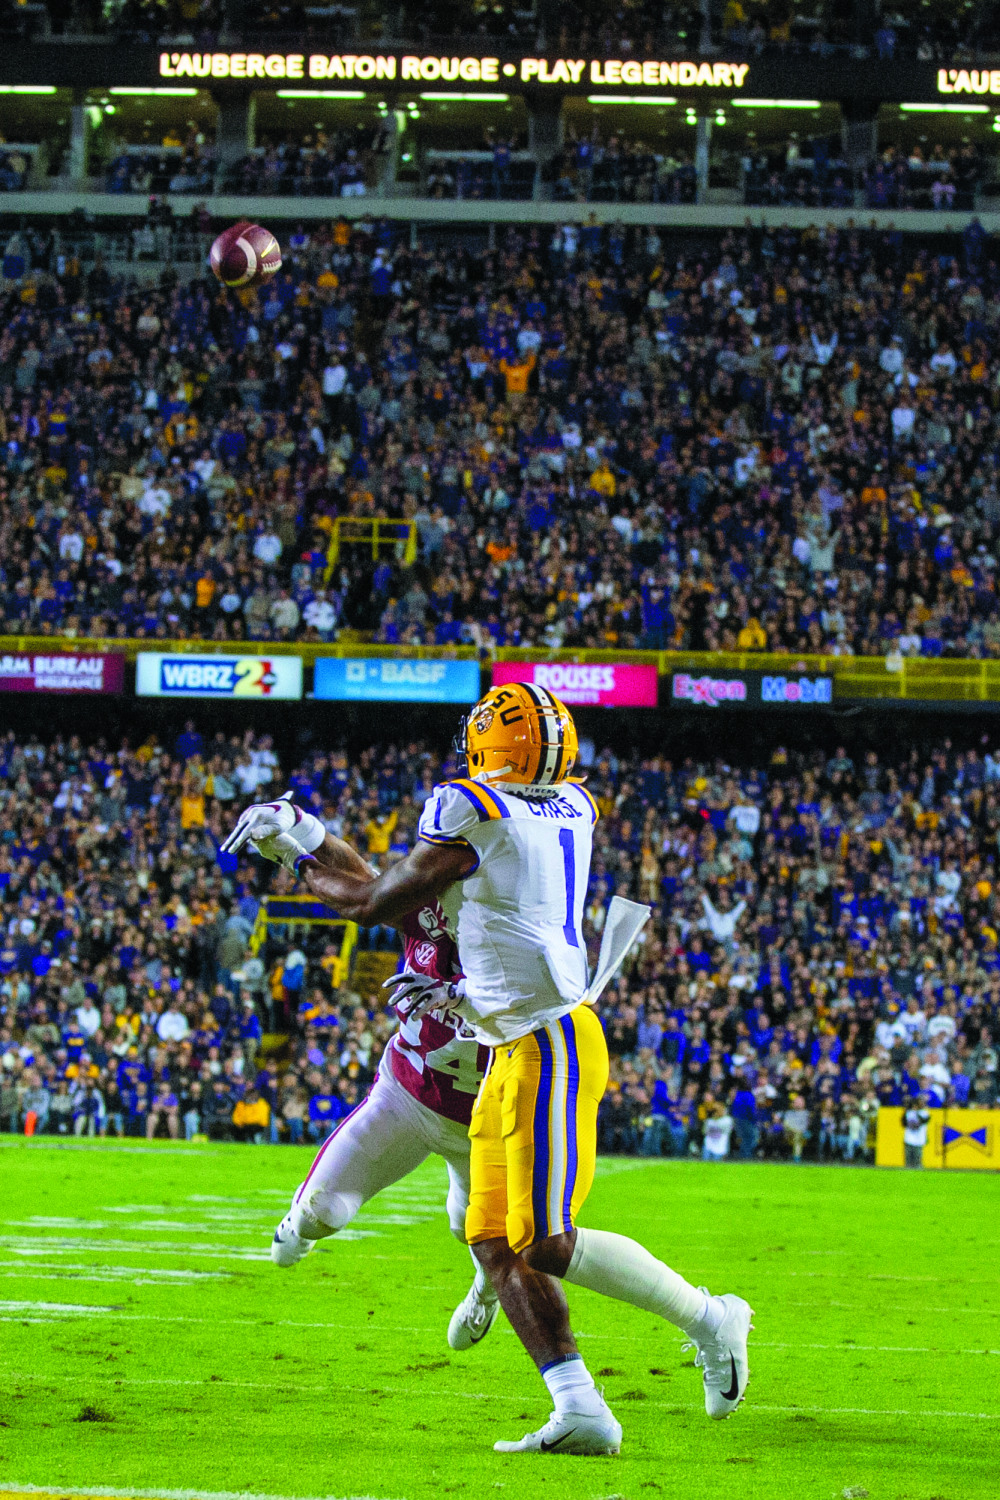 Just Peachy: LSU is Back in the National Championship Hunt ...